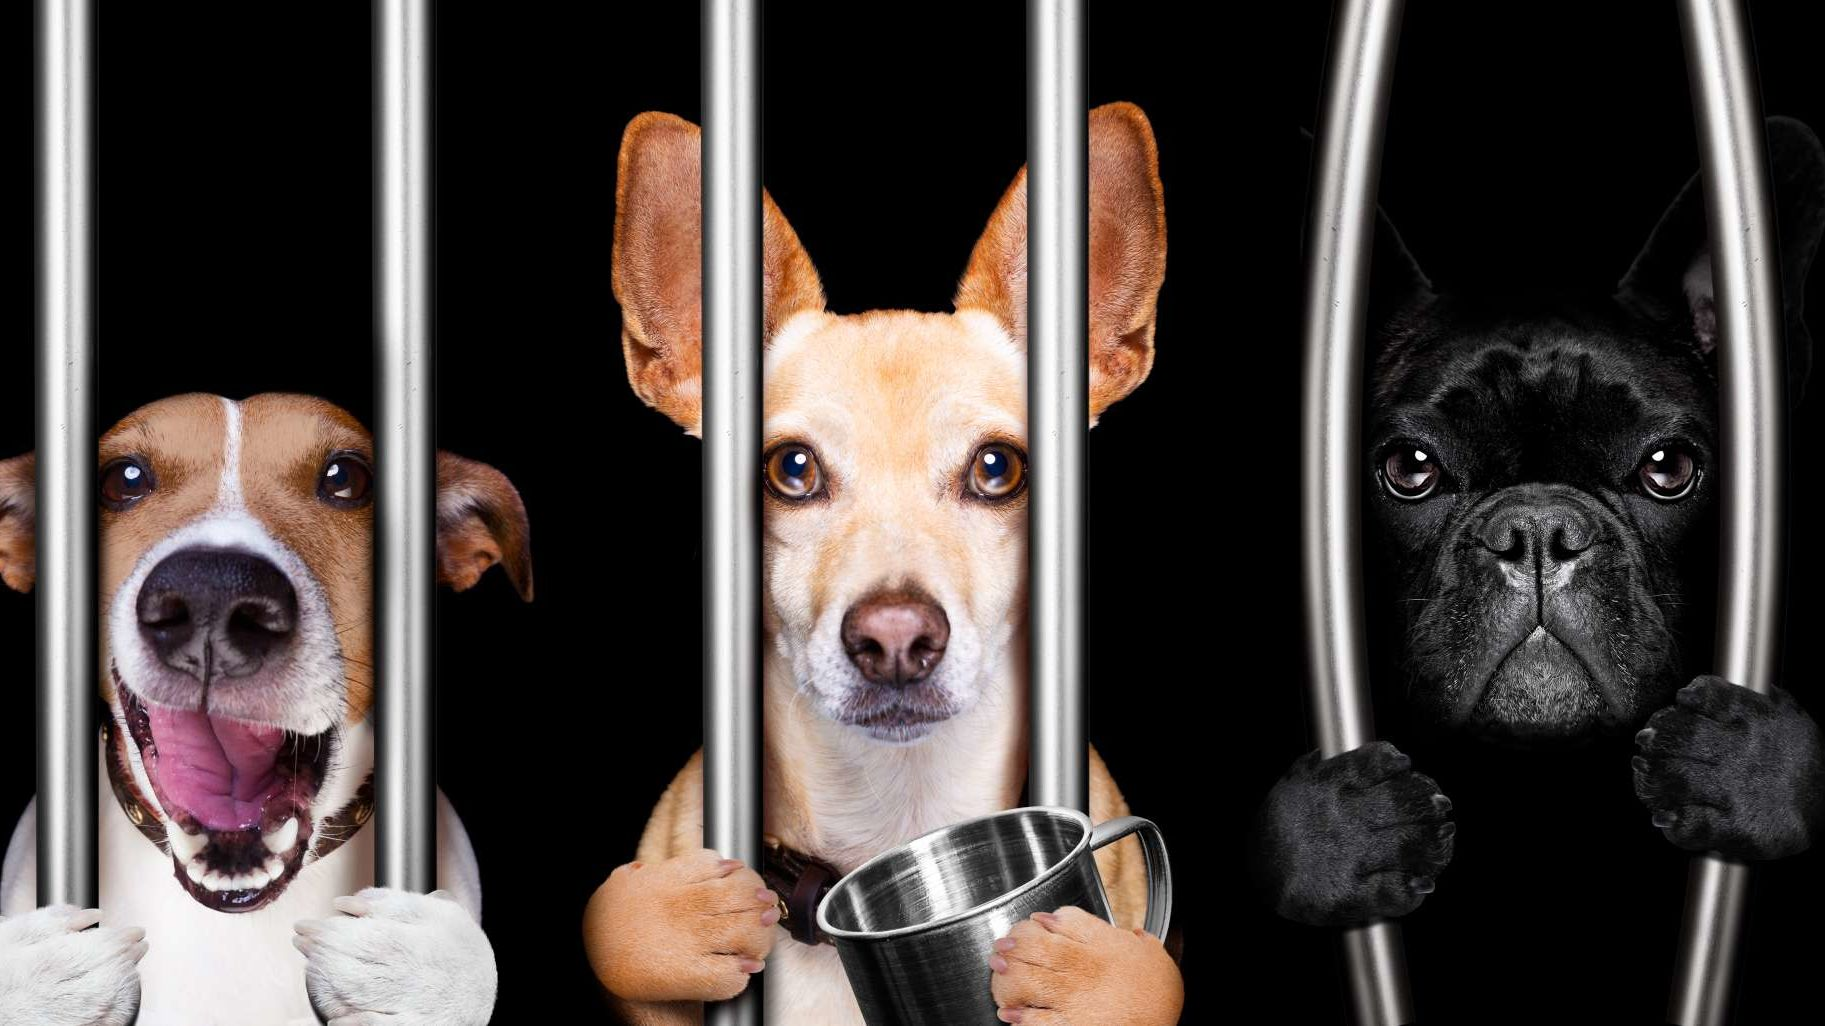 25 Animals That Have Been Imprisoned or Arrested